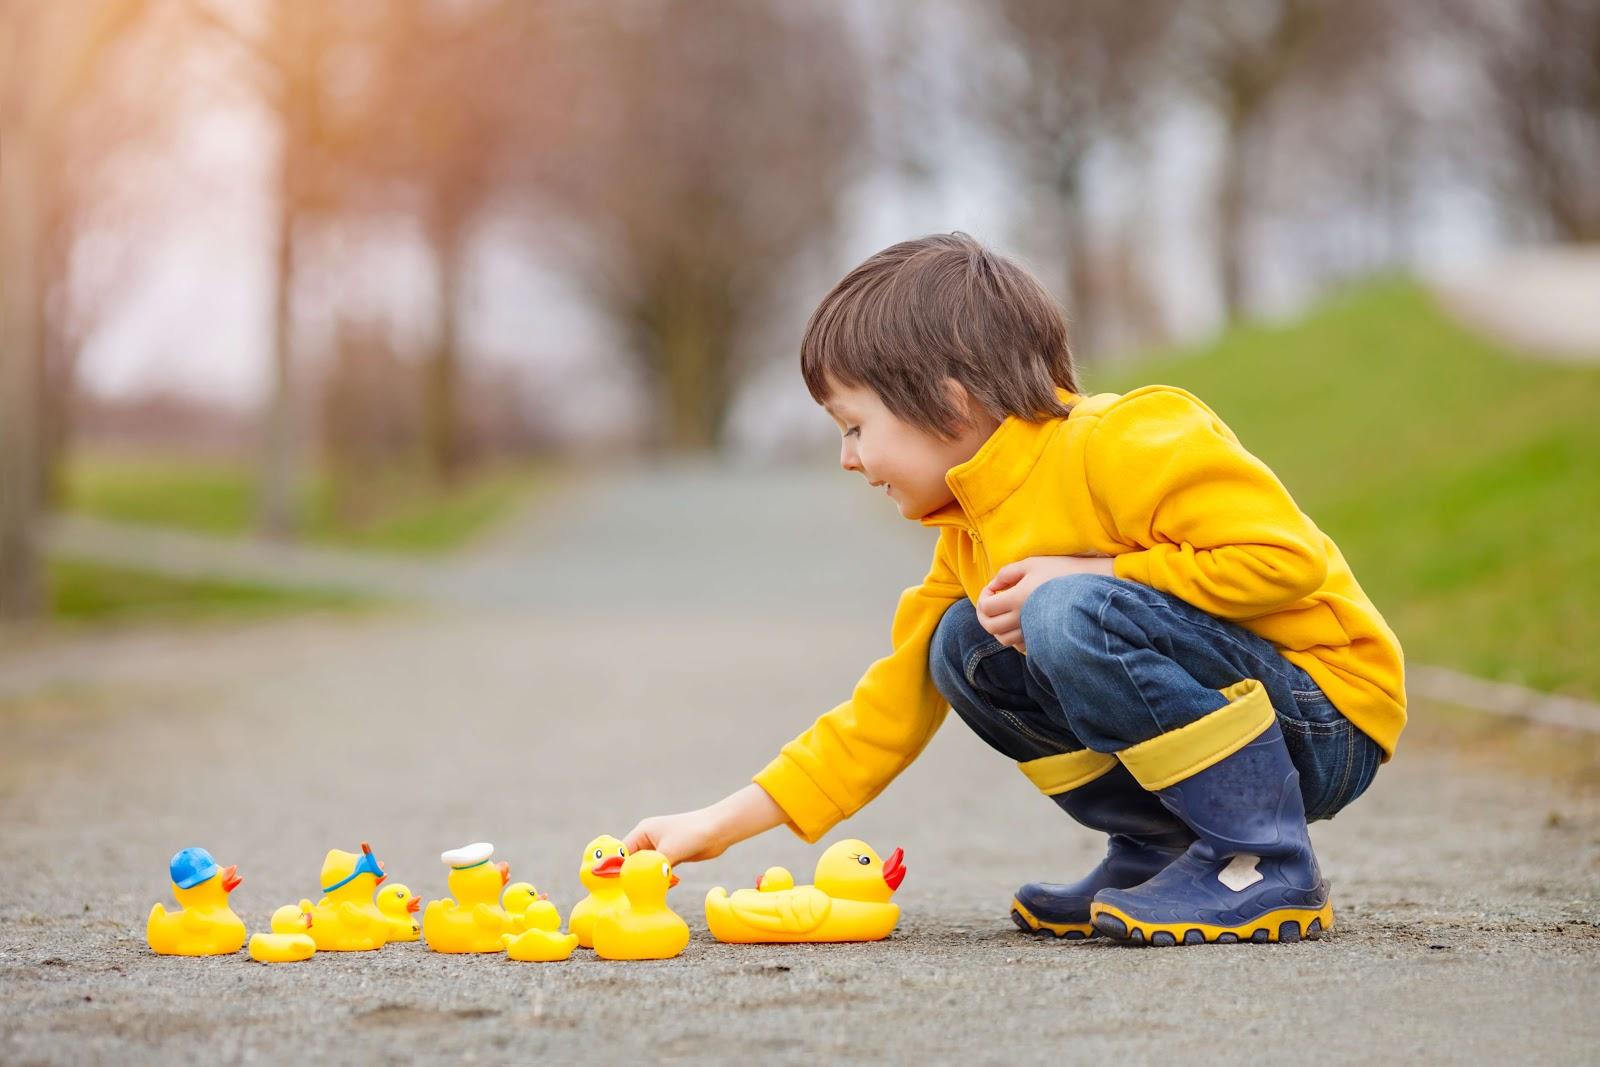 Child practicing debugging code with rubber ducks